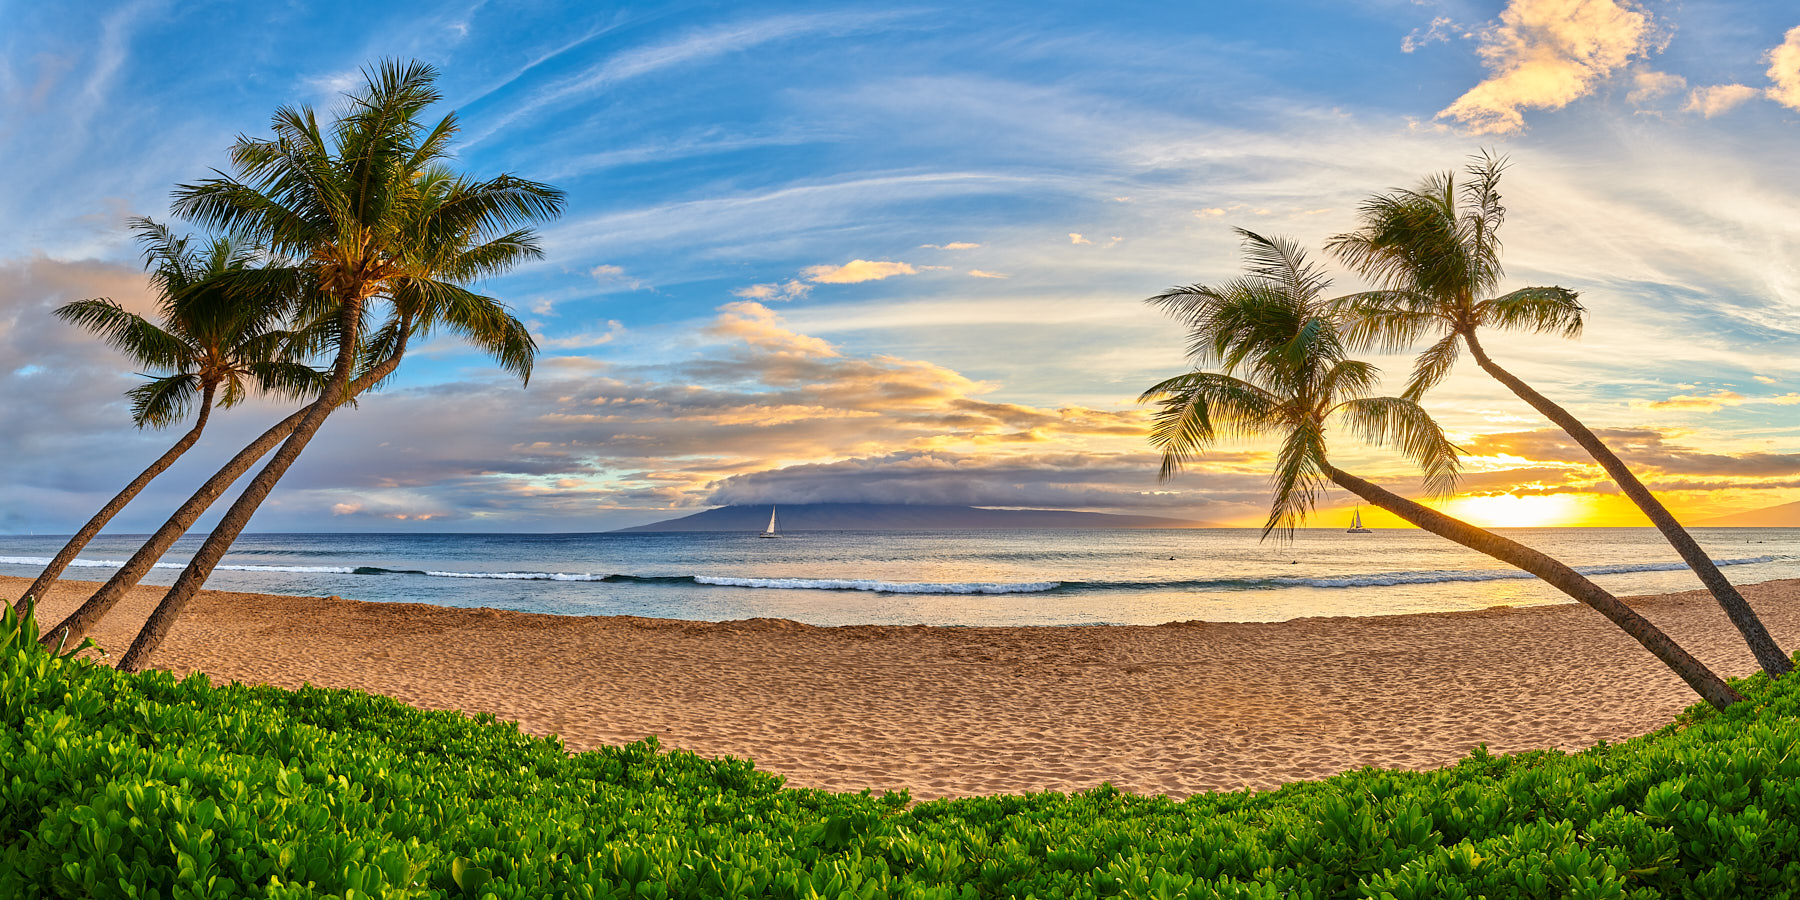 panoramic scene captured at the world famous Ka'anapali Beach on the Hawaiian island of Maui.  The scene features coconut palms, a surfer and a sailboat